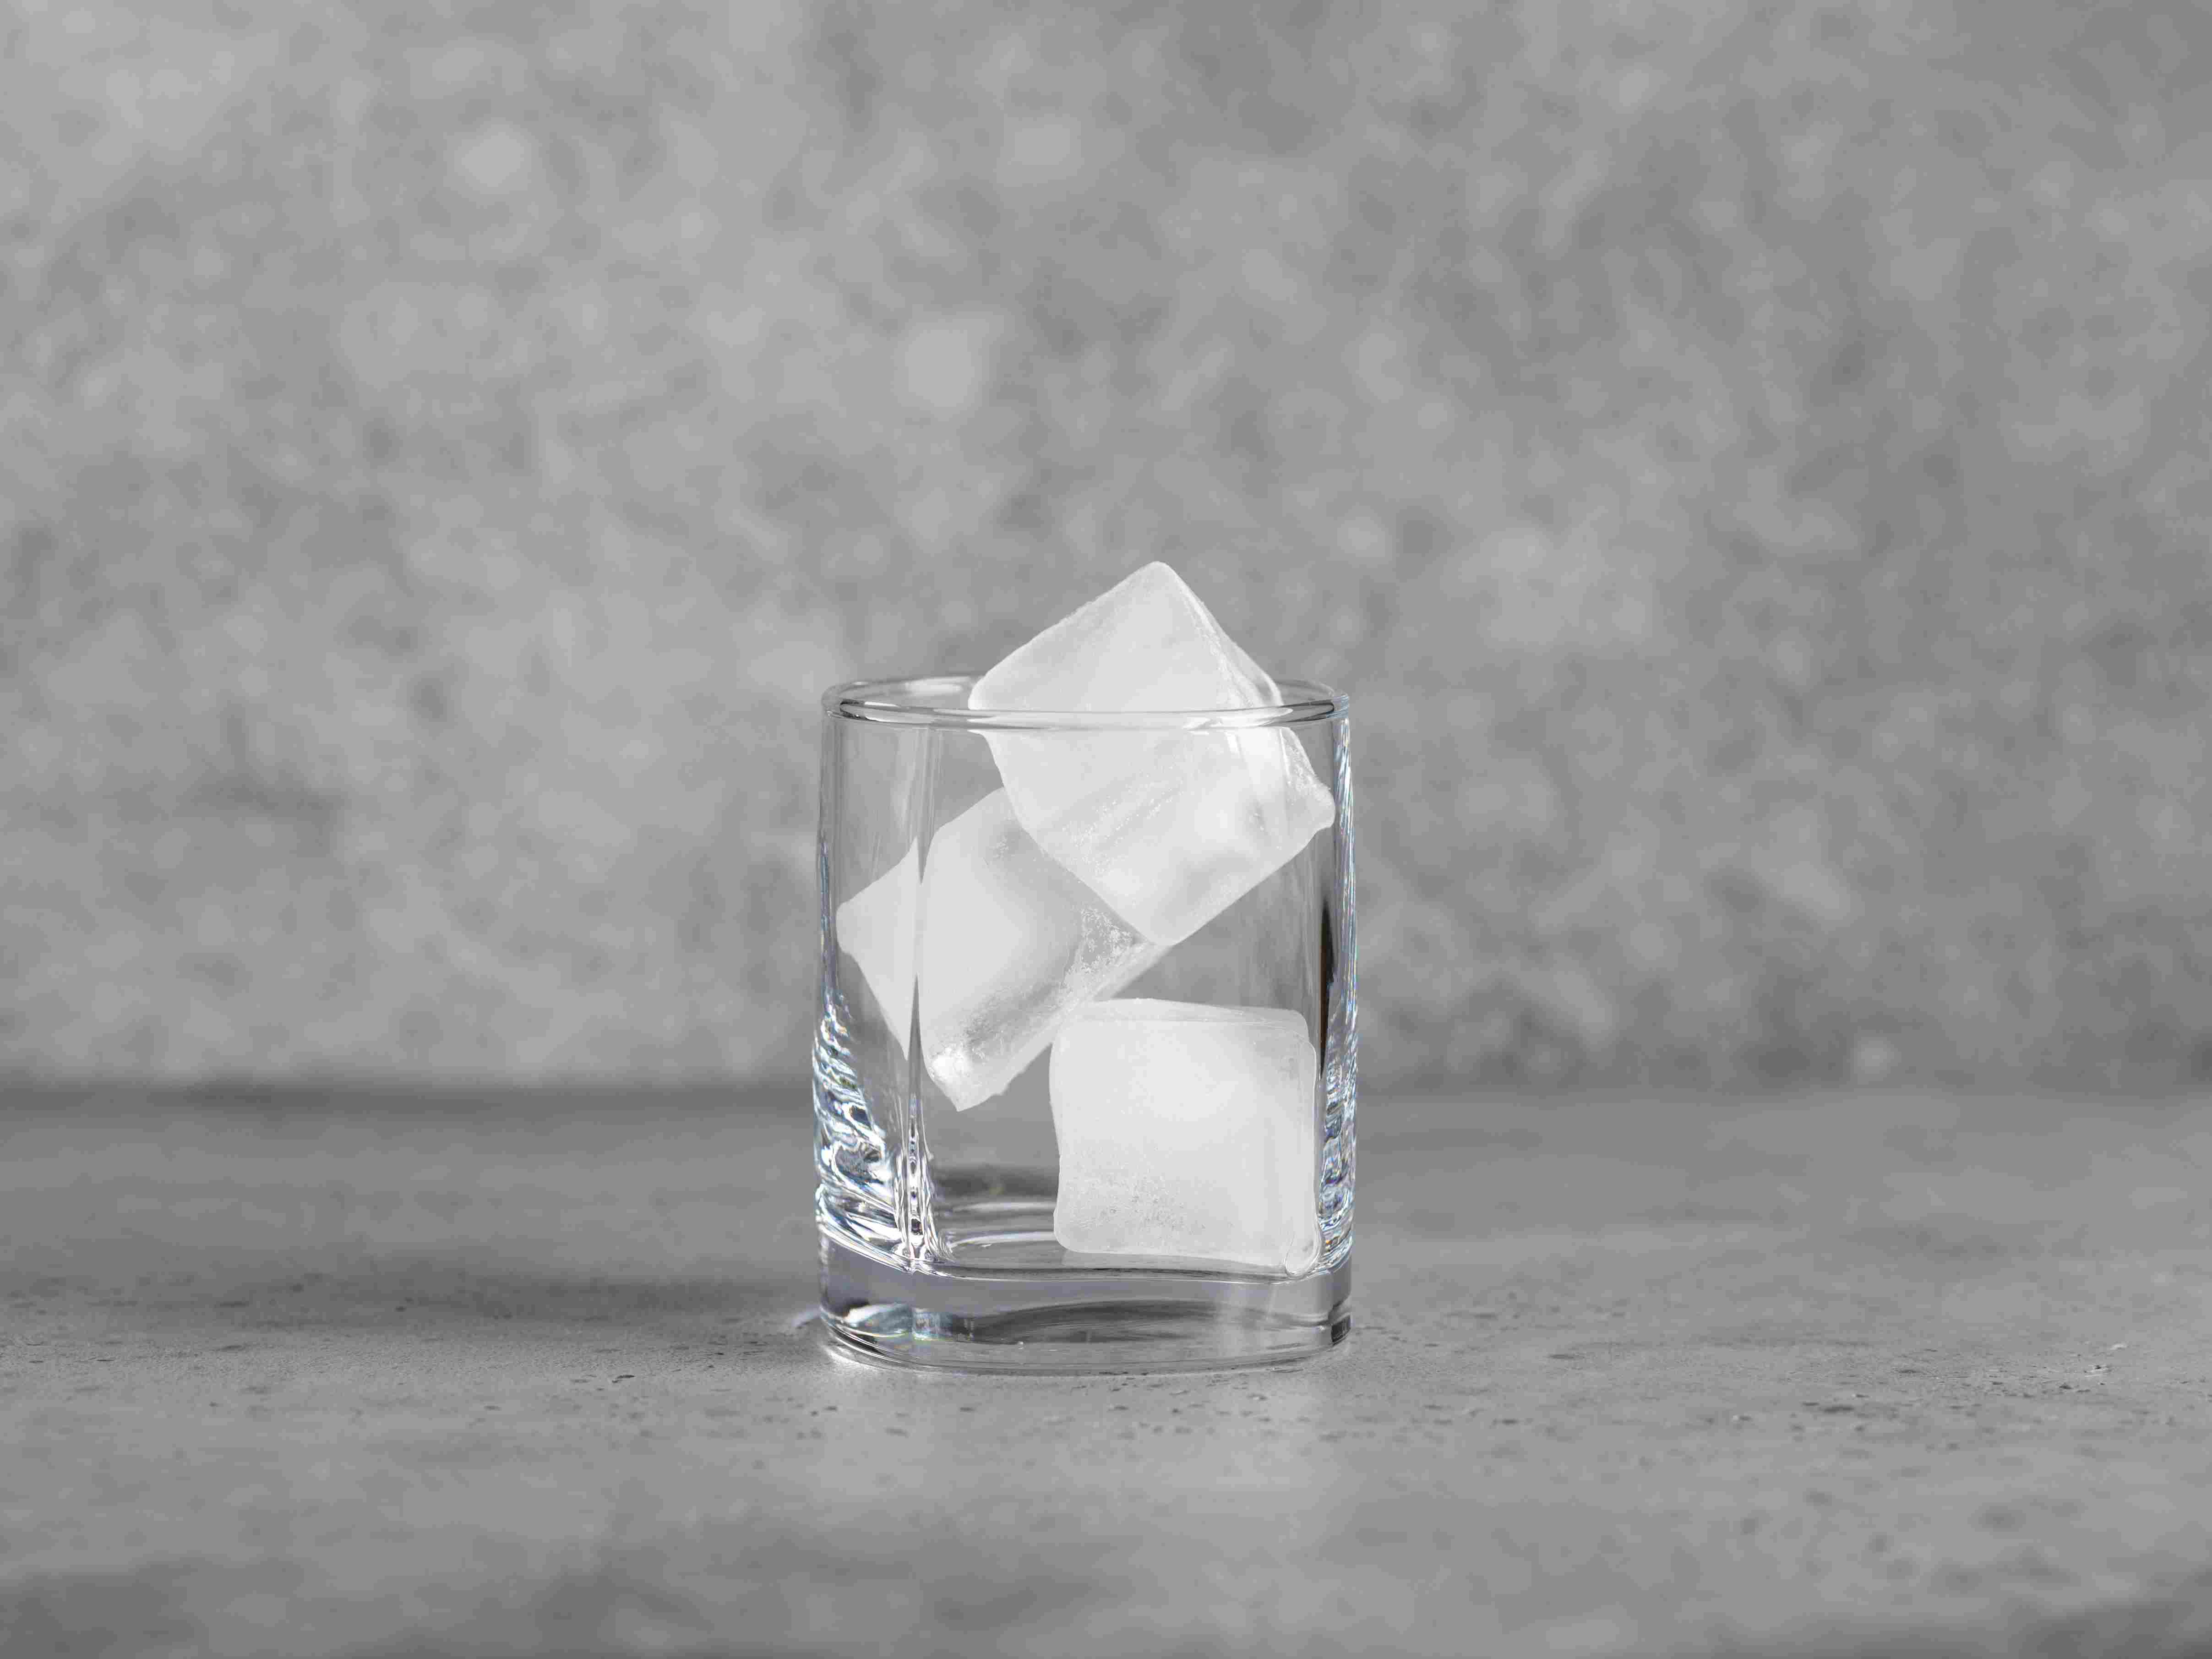 Glass with ice cubes for chilling